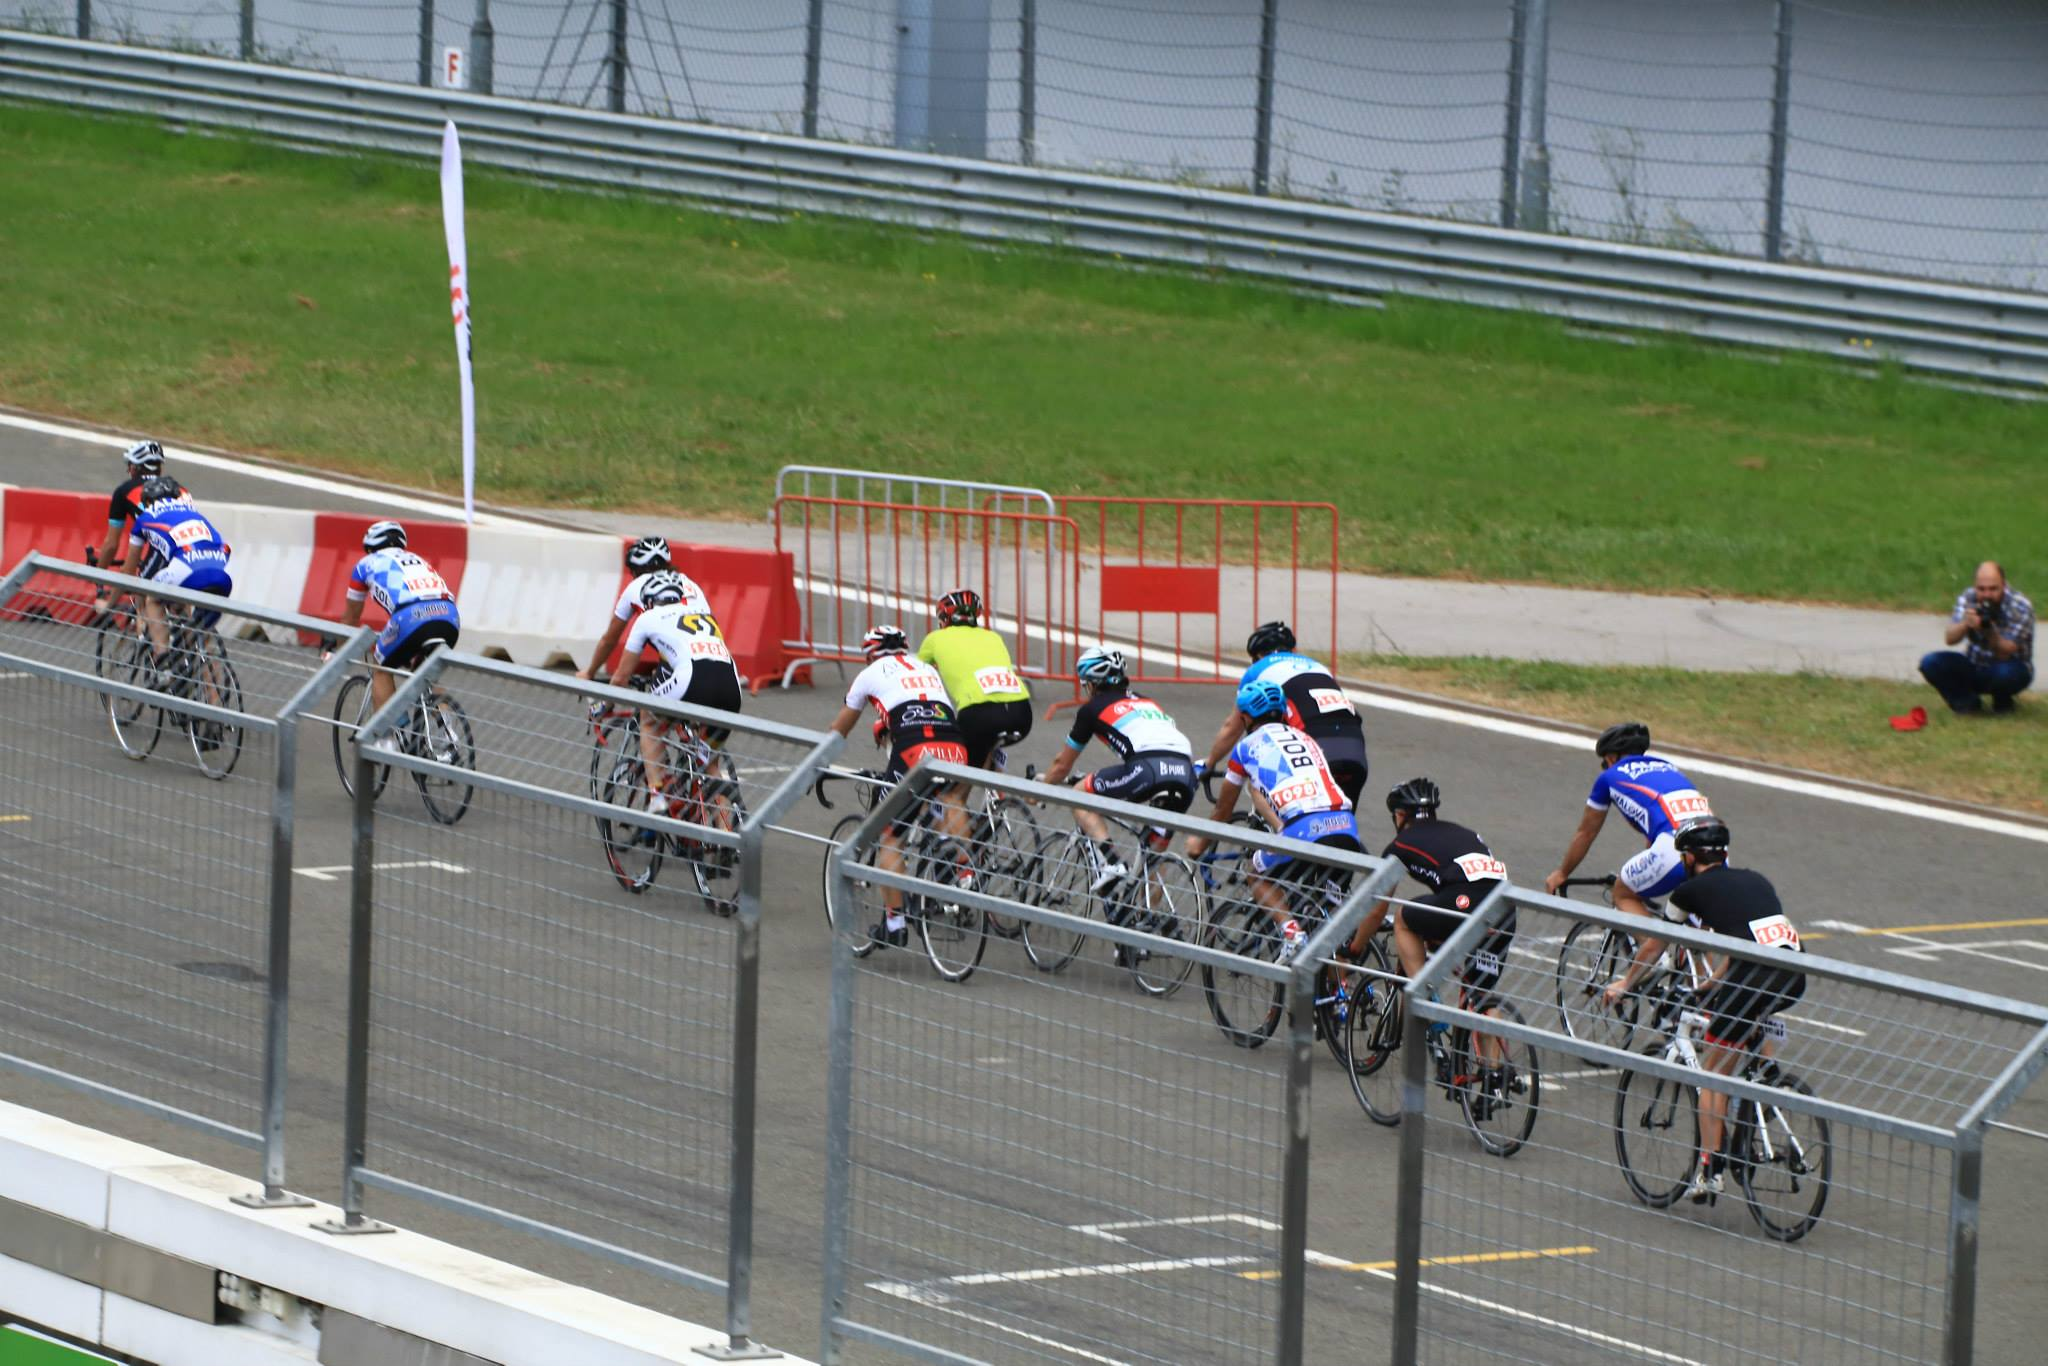 Intercity road race, head of the bunch (May 25, 2014)